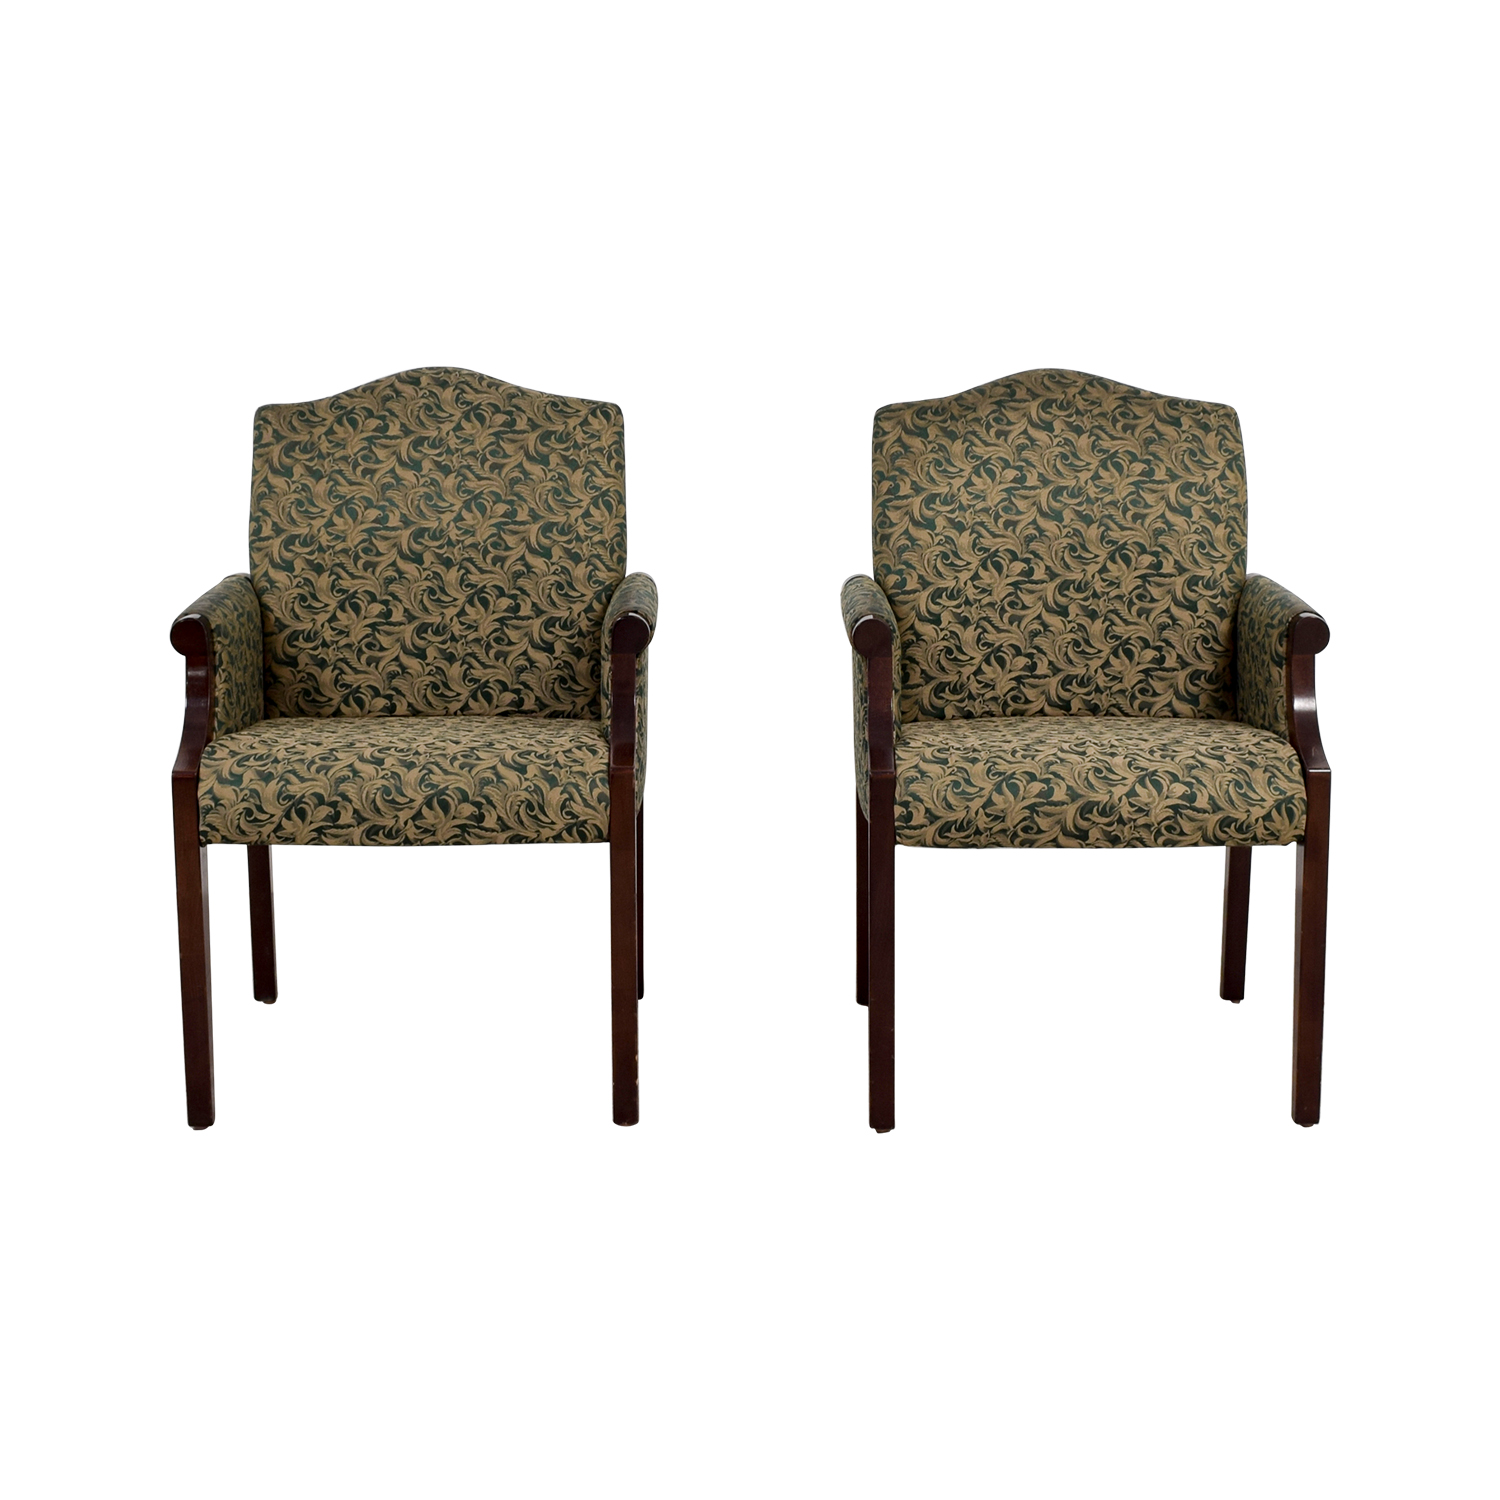 shop Paoli Green Leaf Upholstered Accent Chairs Paoli